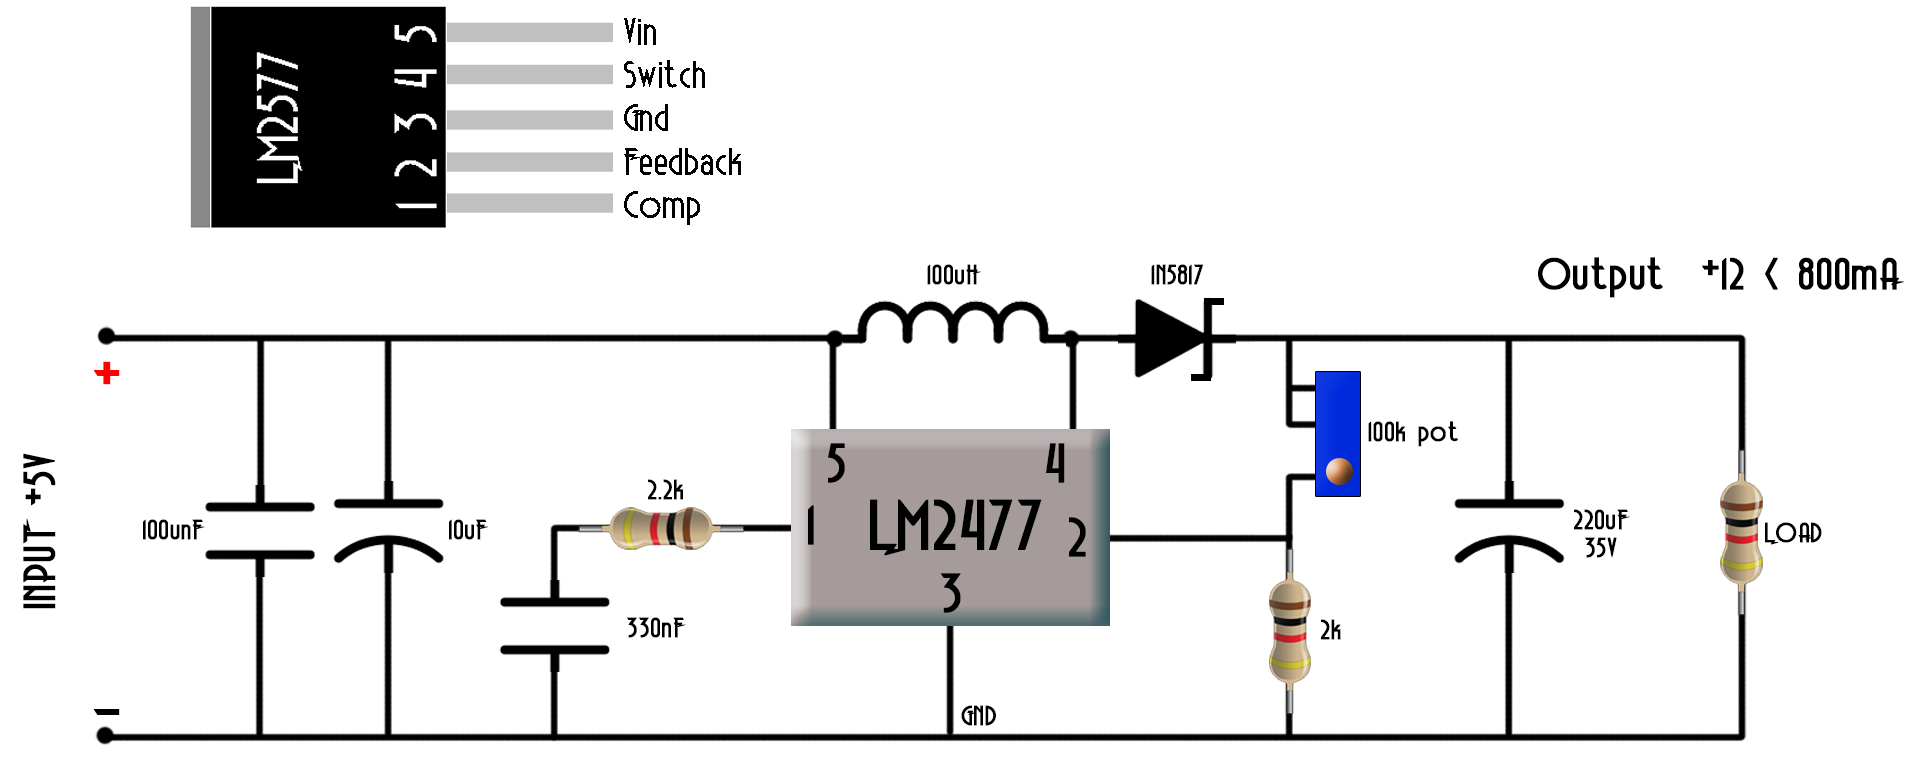 Dc To Boost Converter Circuit Homemade Application Circuits Explained In Simple Words Dont Apply Higher Voltage Or You Could Burn Lm2577 Adj Component This Case We Need No External Switch Since The Already Has It Inside